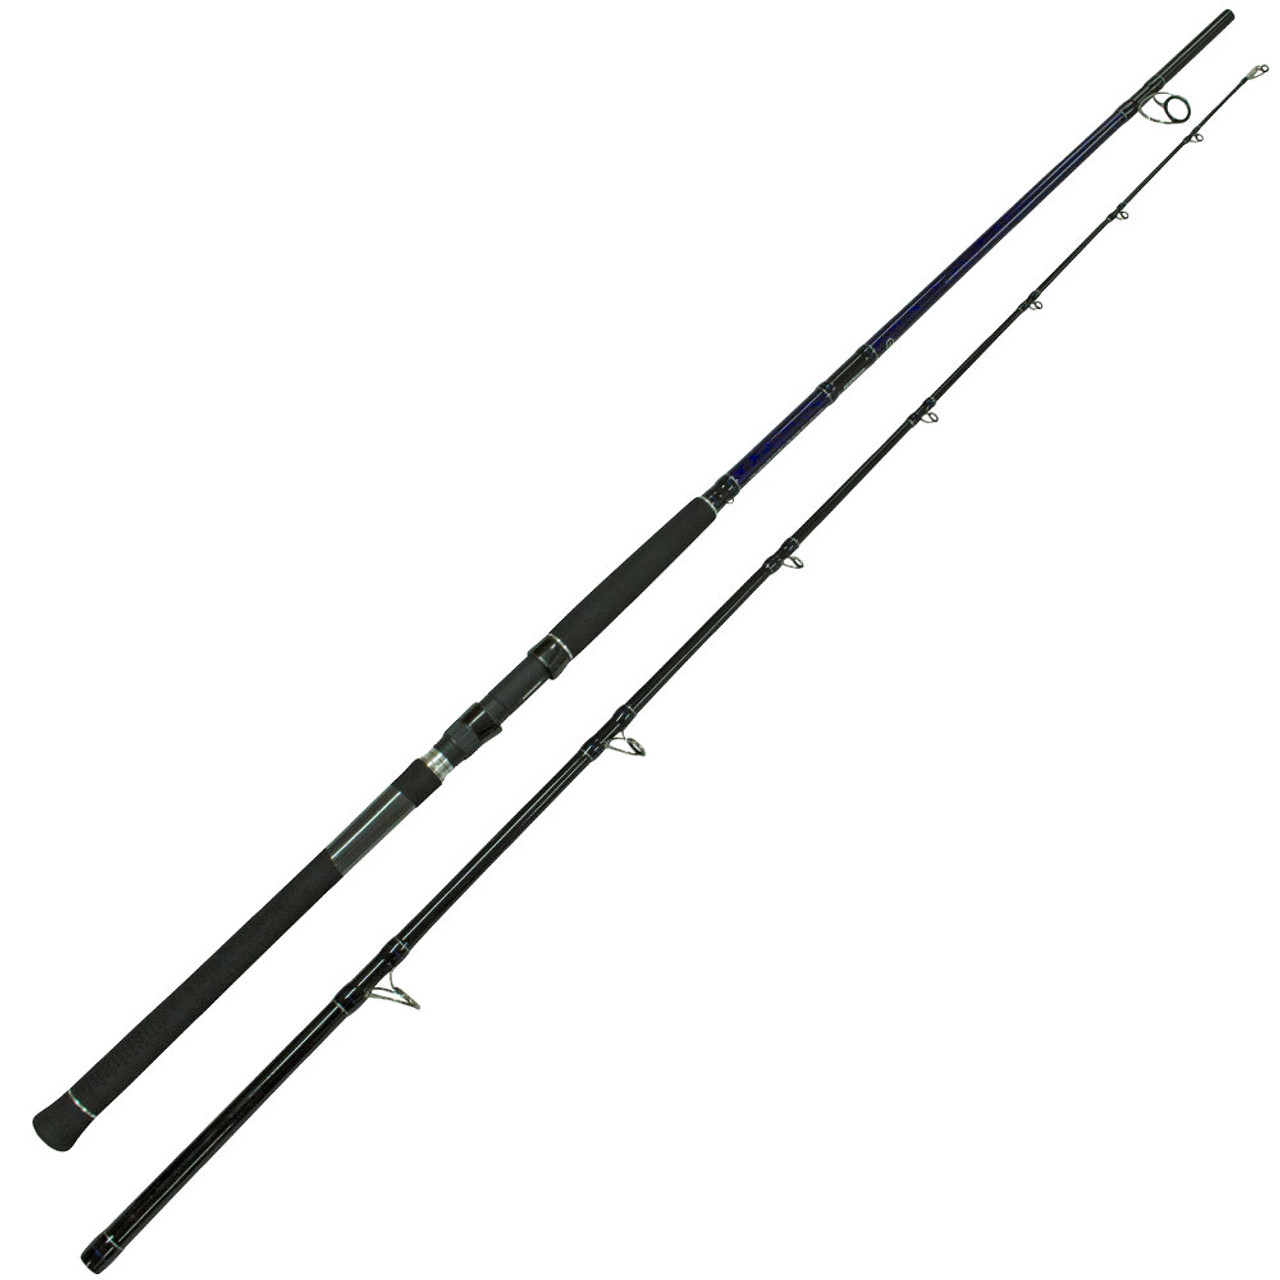 Fuji SPHG Size 30 Single Foot Spinning /& Casting Rod Guide 1 NEW